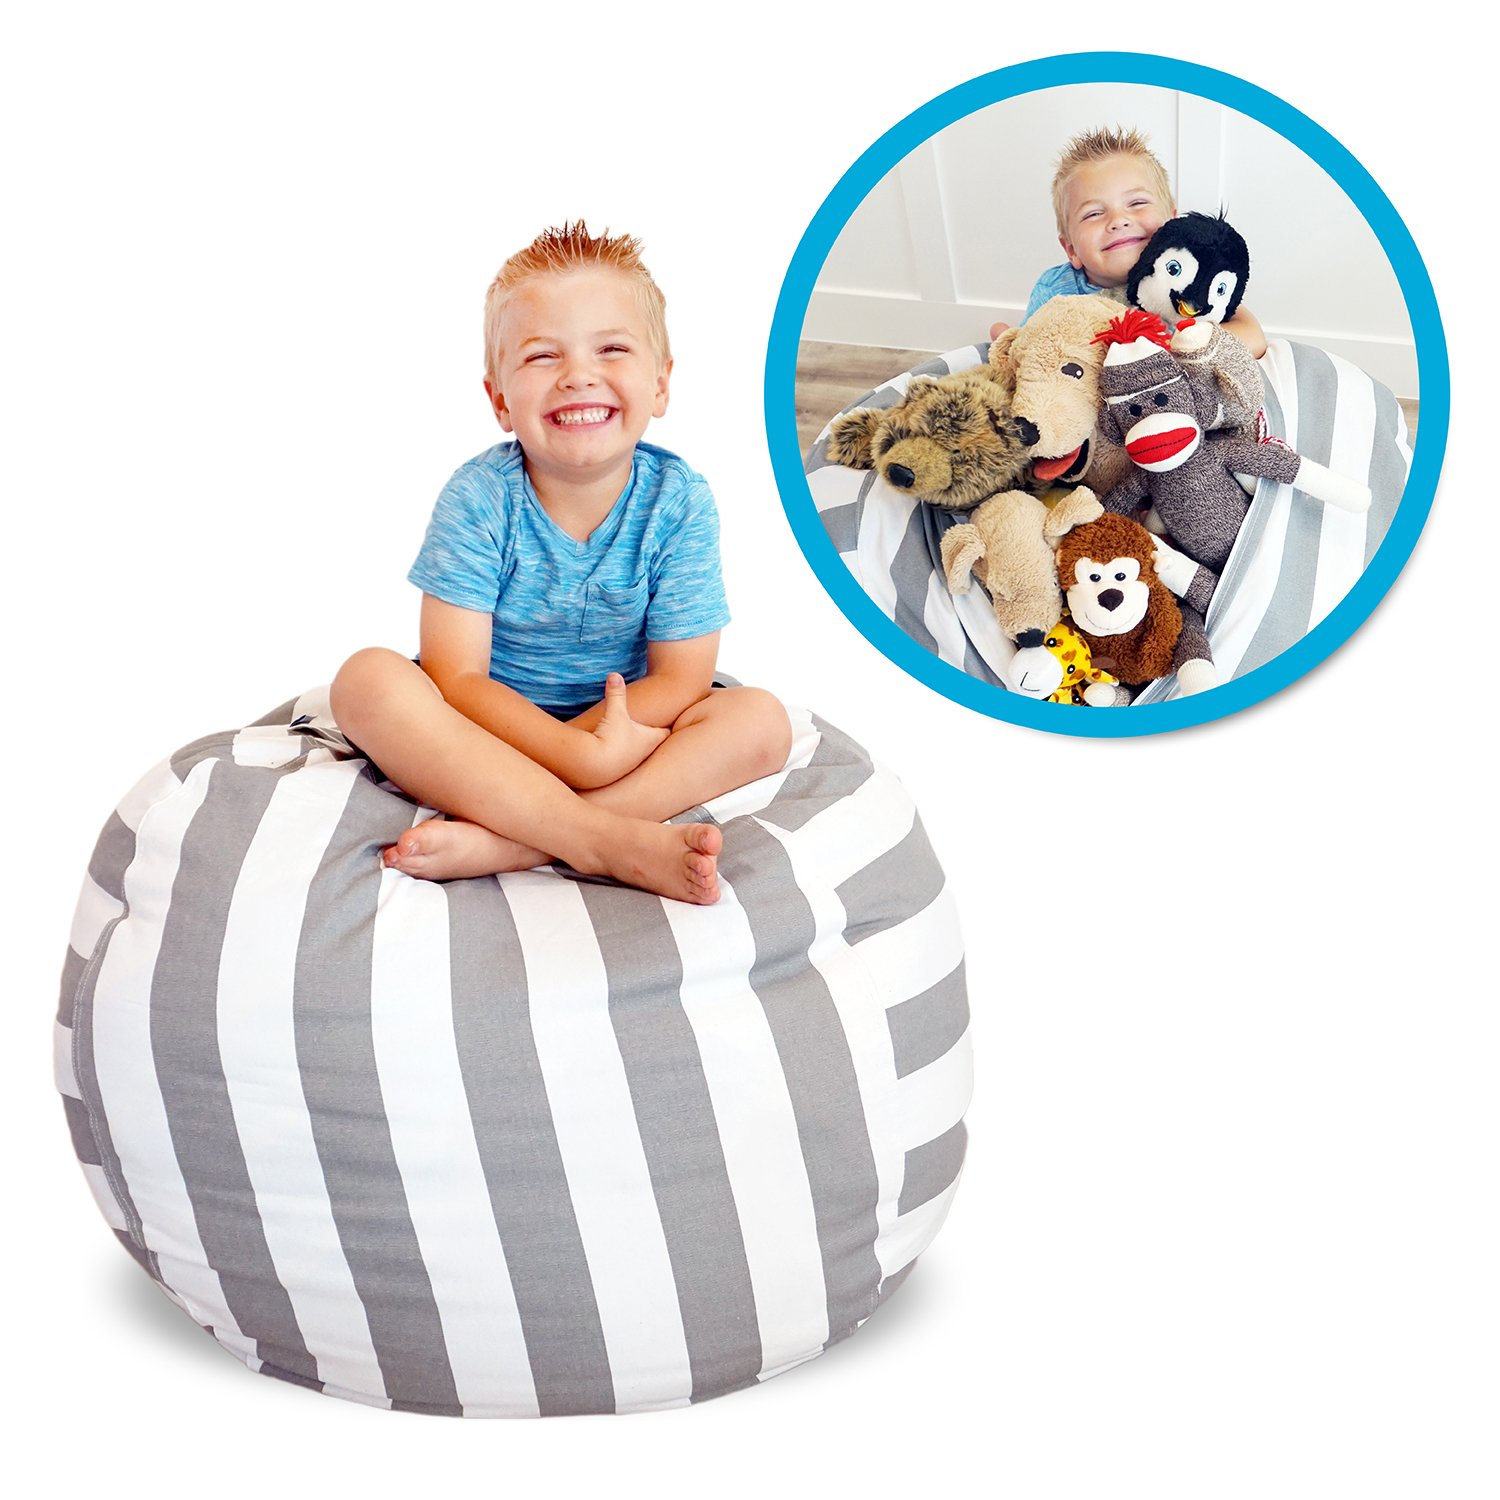 Soothing Company Stuffed Animal Bean Bag Chair for Kids - Extra Large Empty Beanbag - Kid Toy Storage Covers for Your Child's Stuffed Animals and Blankets | Premium Cotton Canvas (38'', Grey Stripe) by Soothing Company